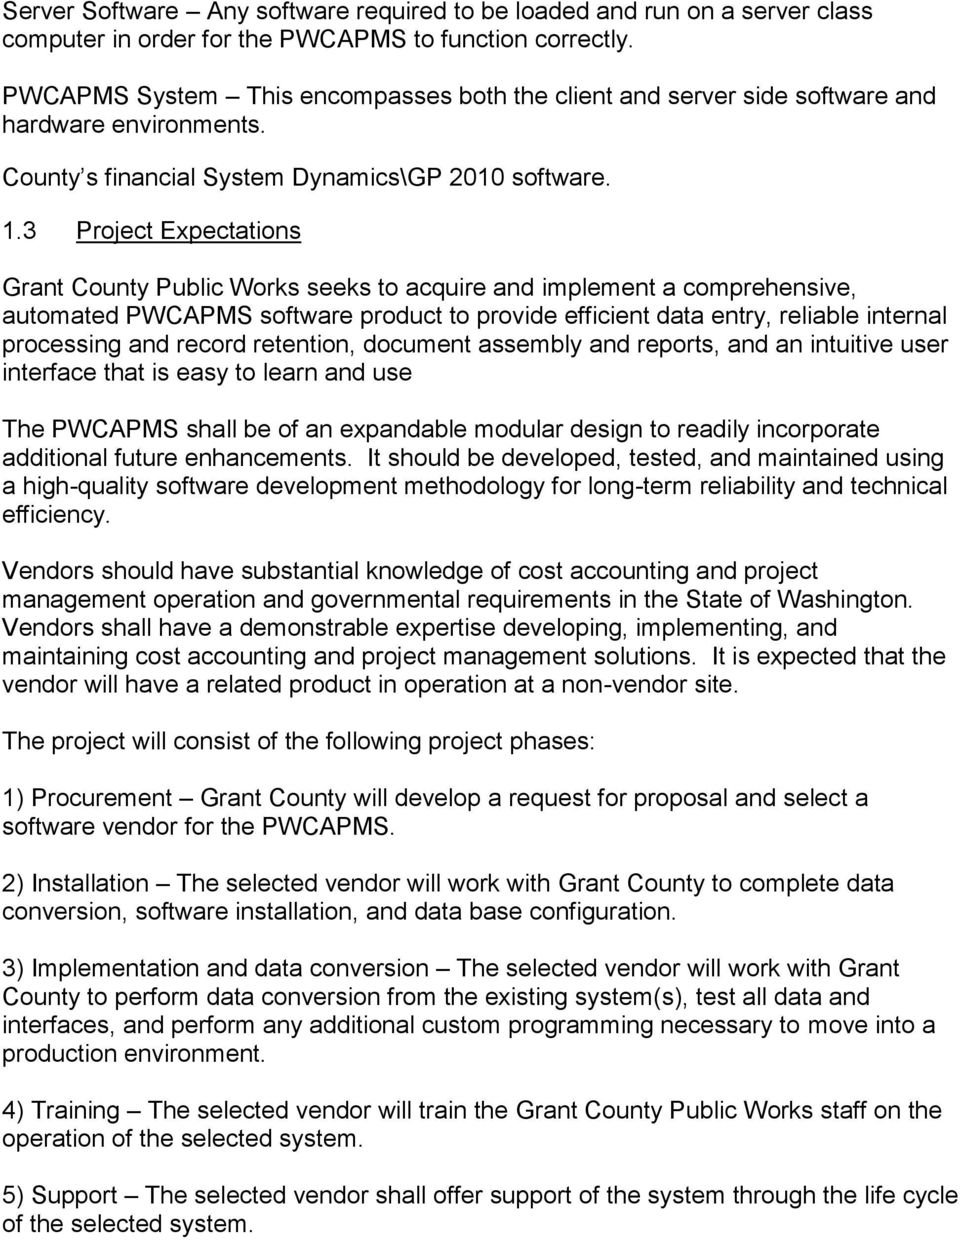 3 Project Expectations Grant County Public Works seeks to acquire and implement a comprehensive, automated PWCAPMS software product to provide efficient data entry, reliable internal processing and